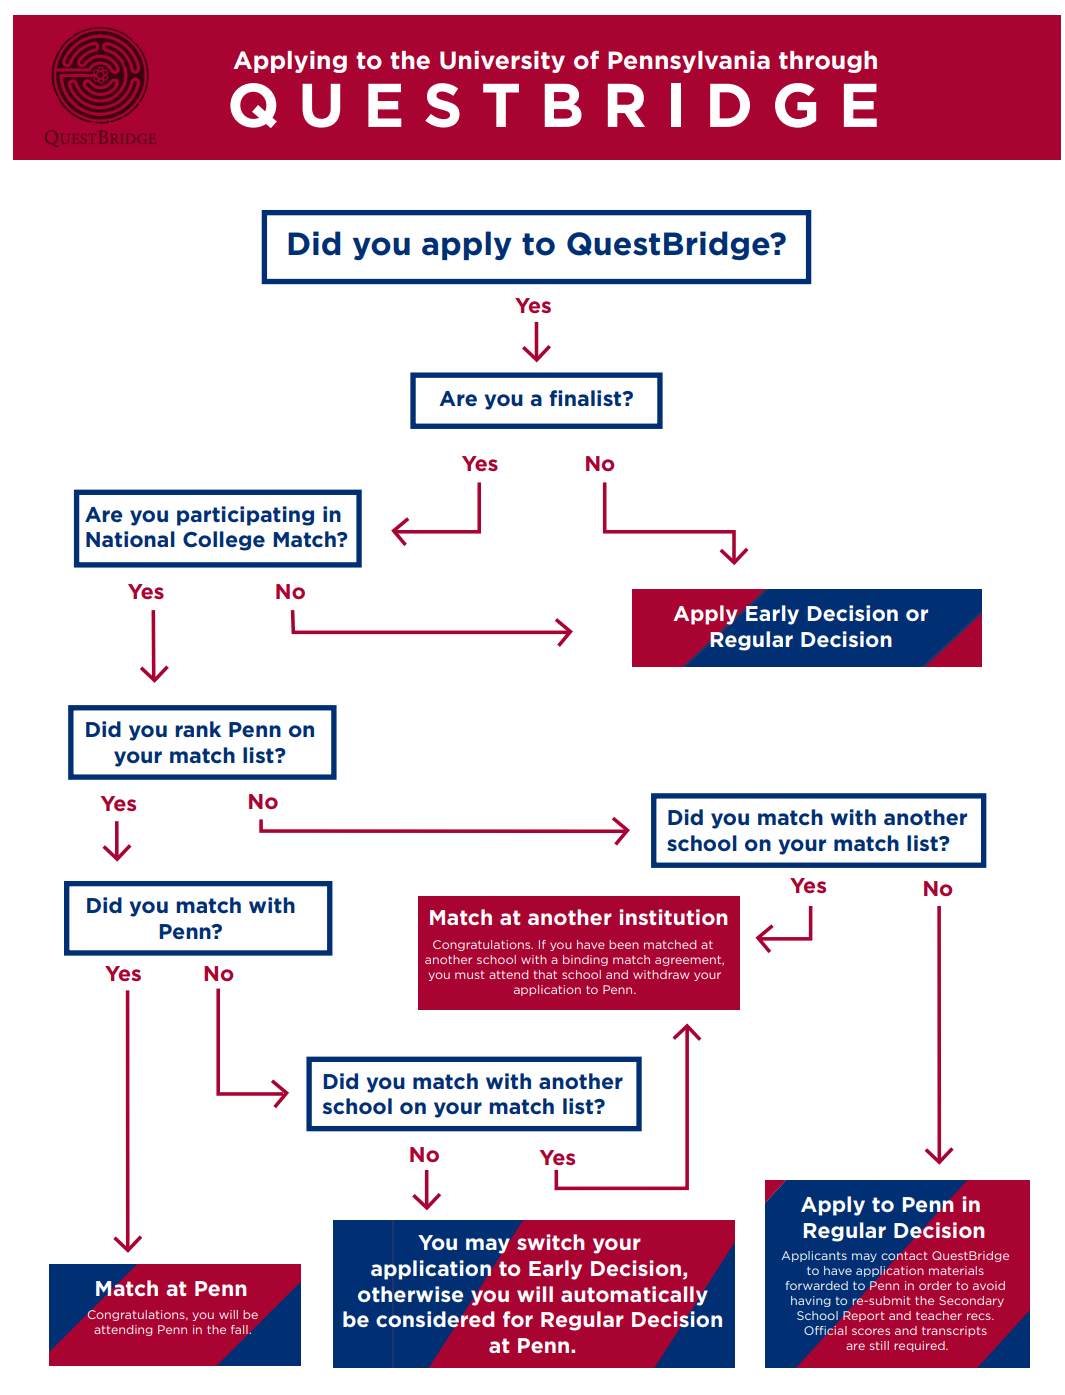 questbridge flowchart